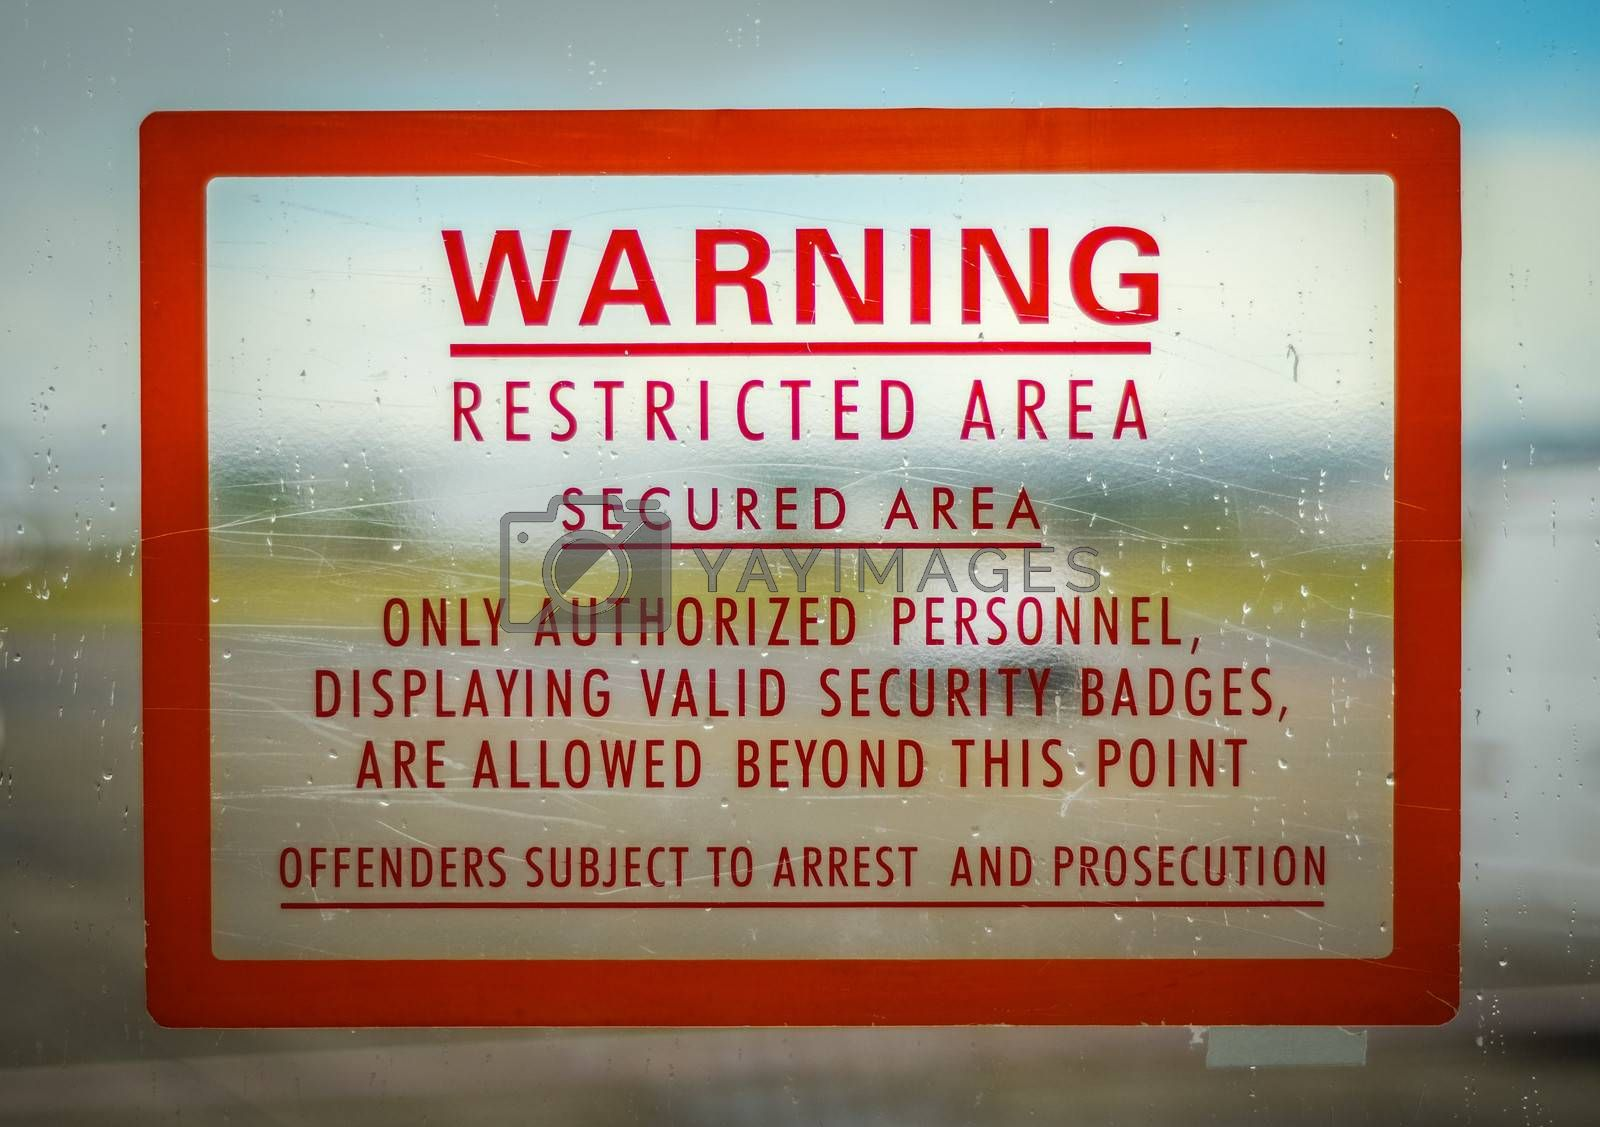 A Red Airport Security Restricted Area Warning Sign